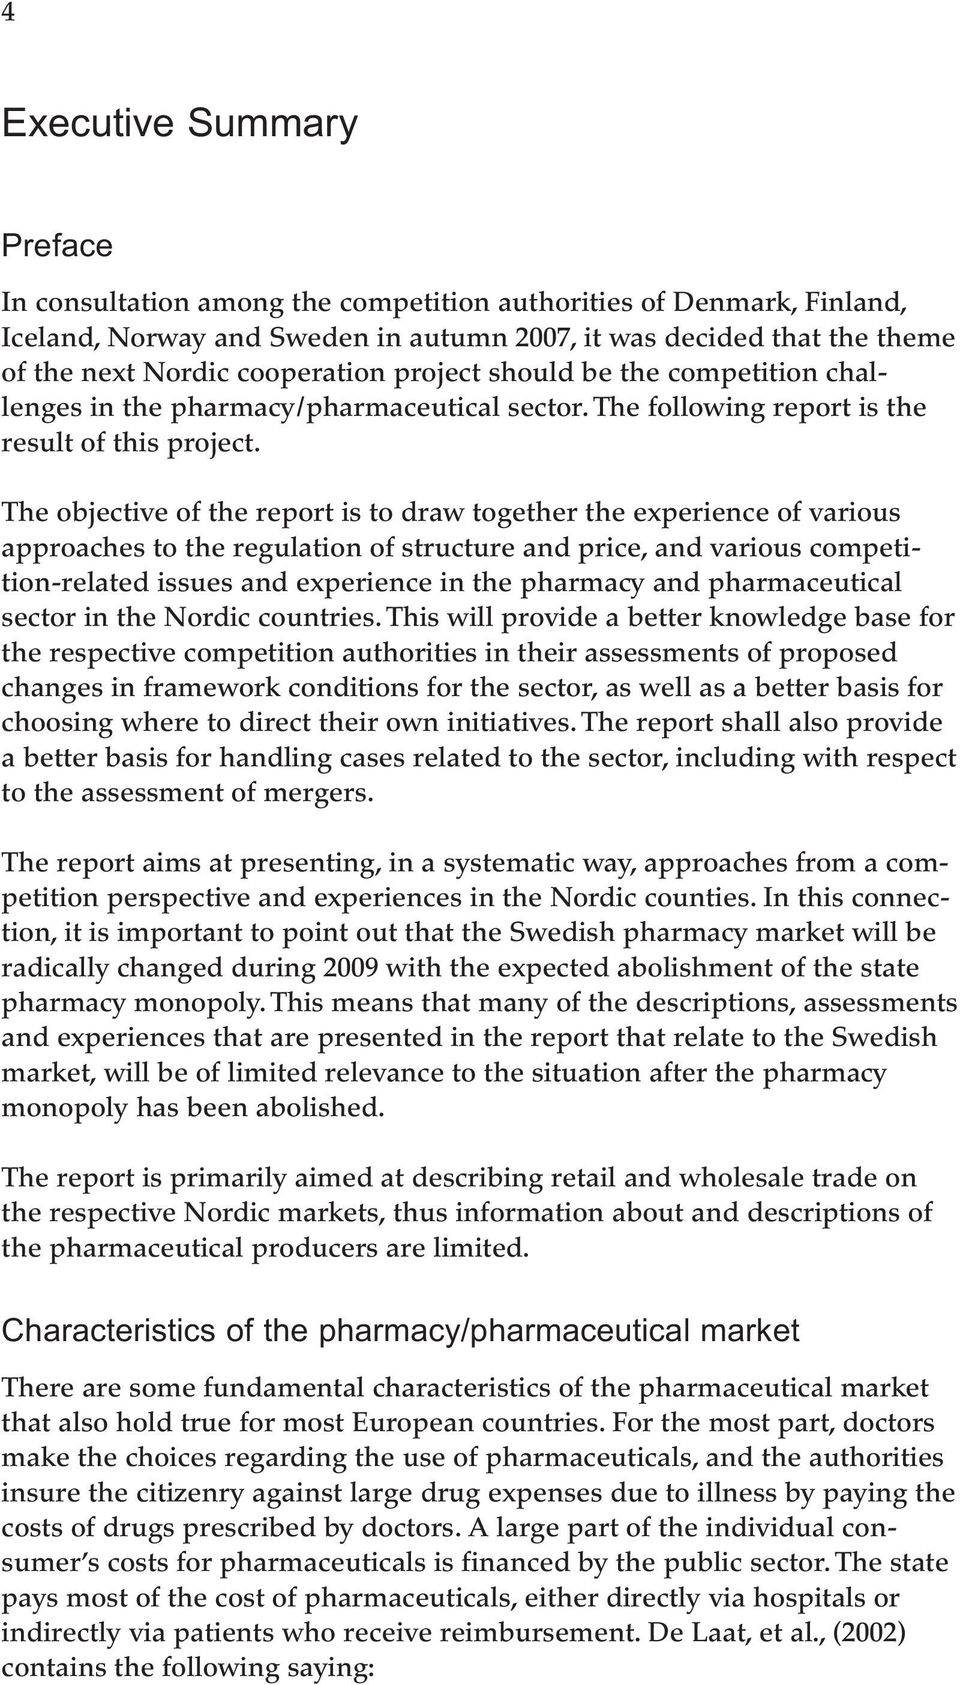 The objective of the report is to draw together the experience of various approaches to the regulation of structure and price, and various competition-related issues and experience in the pharmacy